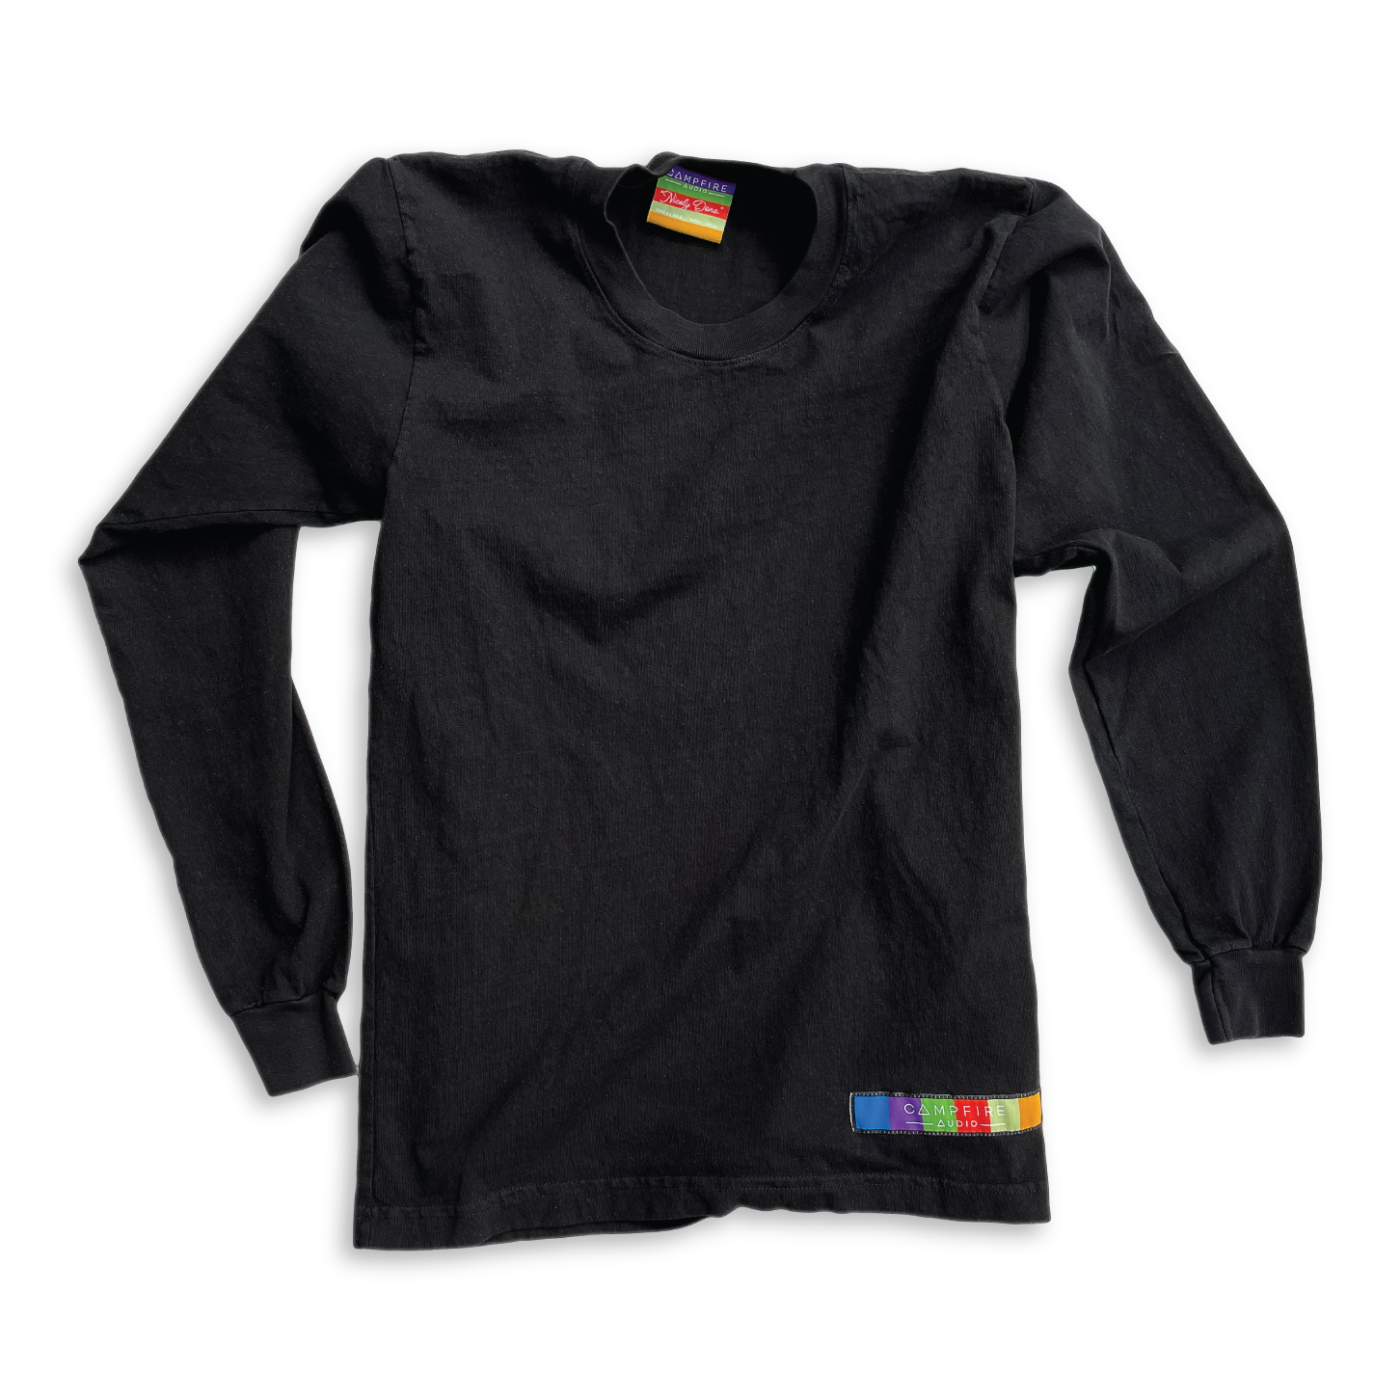 Recycled Cotton Long Sleeve T-Shirt in Black with Campfire Audio Color Block Logo Tag